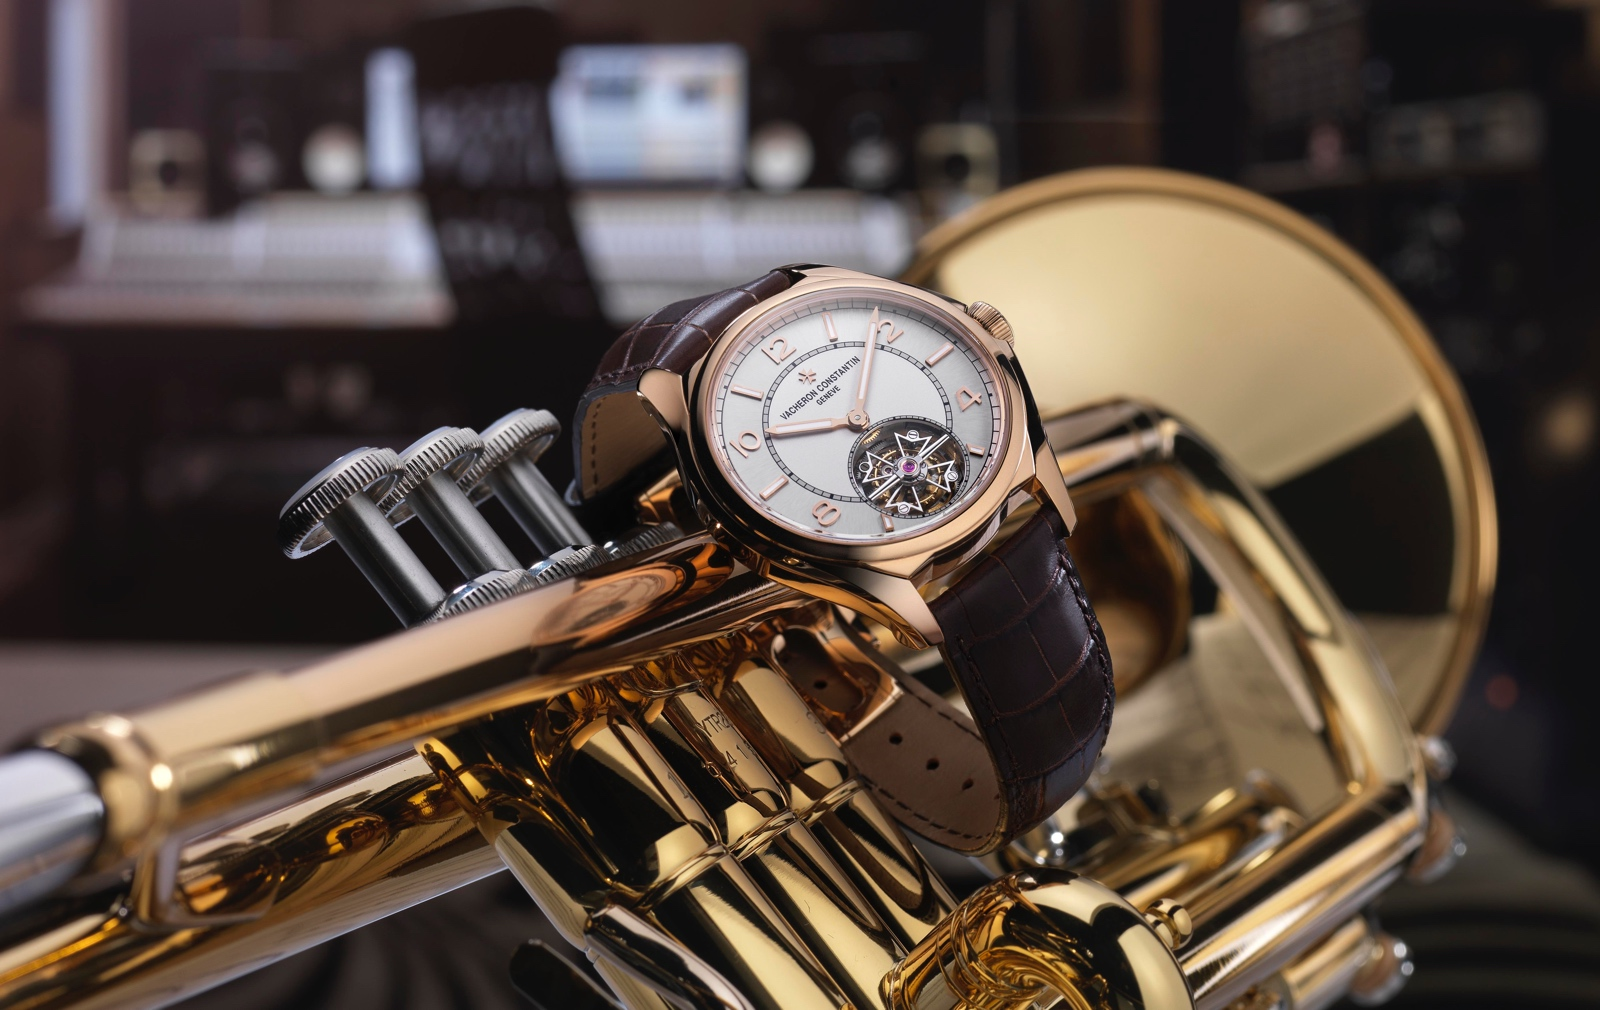 Vacheron Constantin Fiftysix Tourbillon - Abbey Road